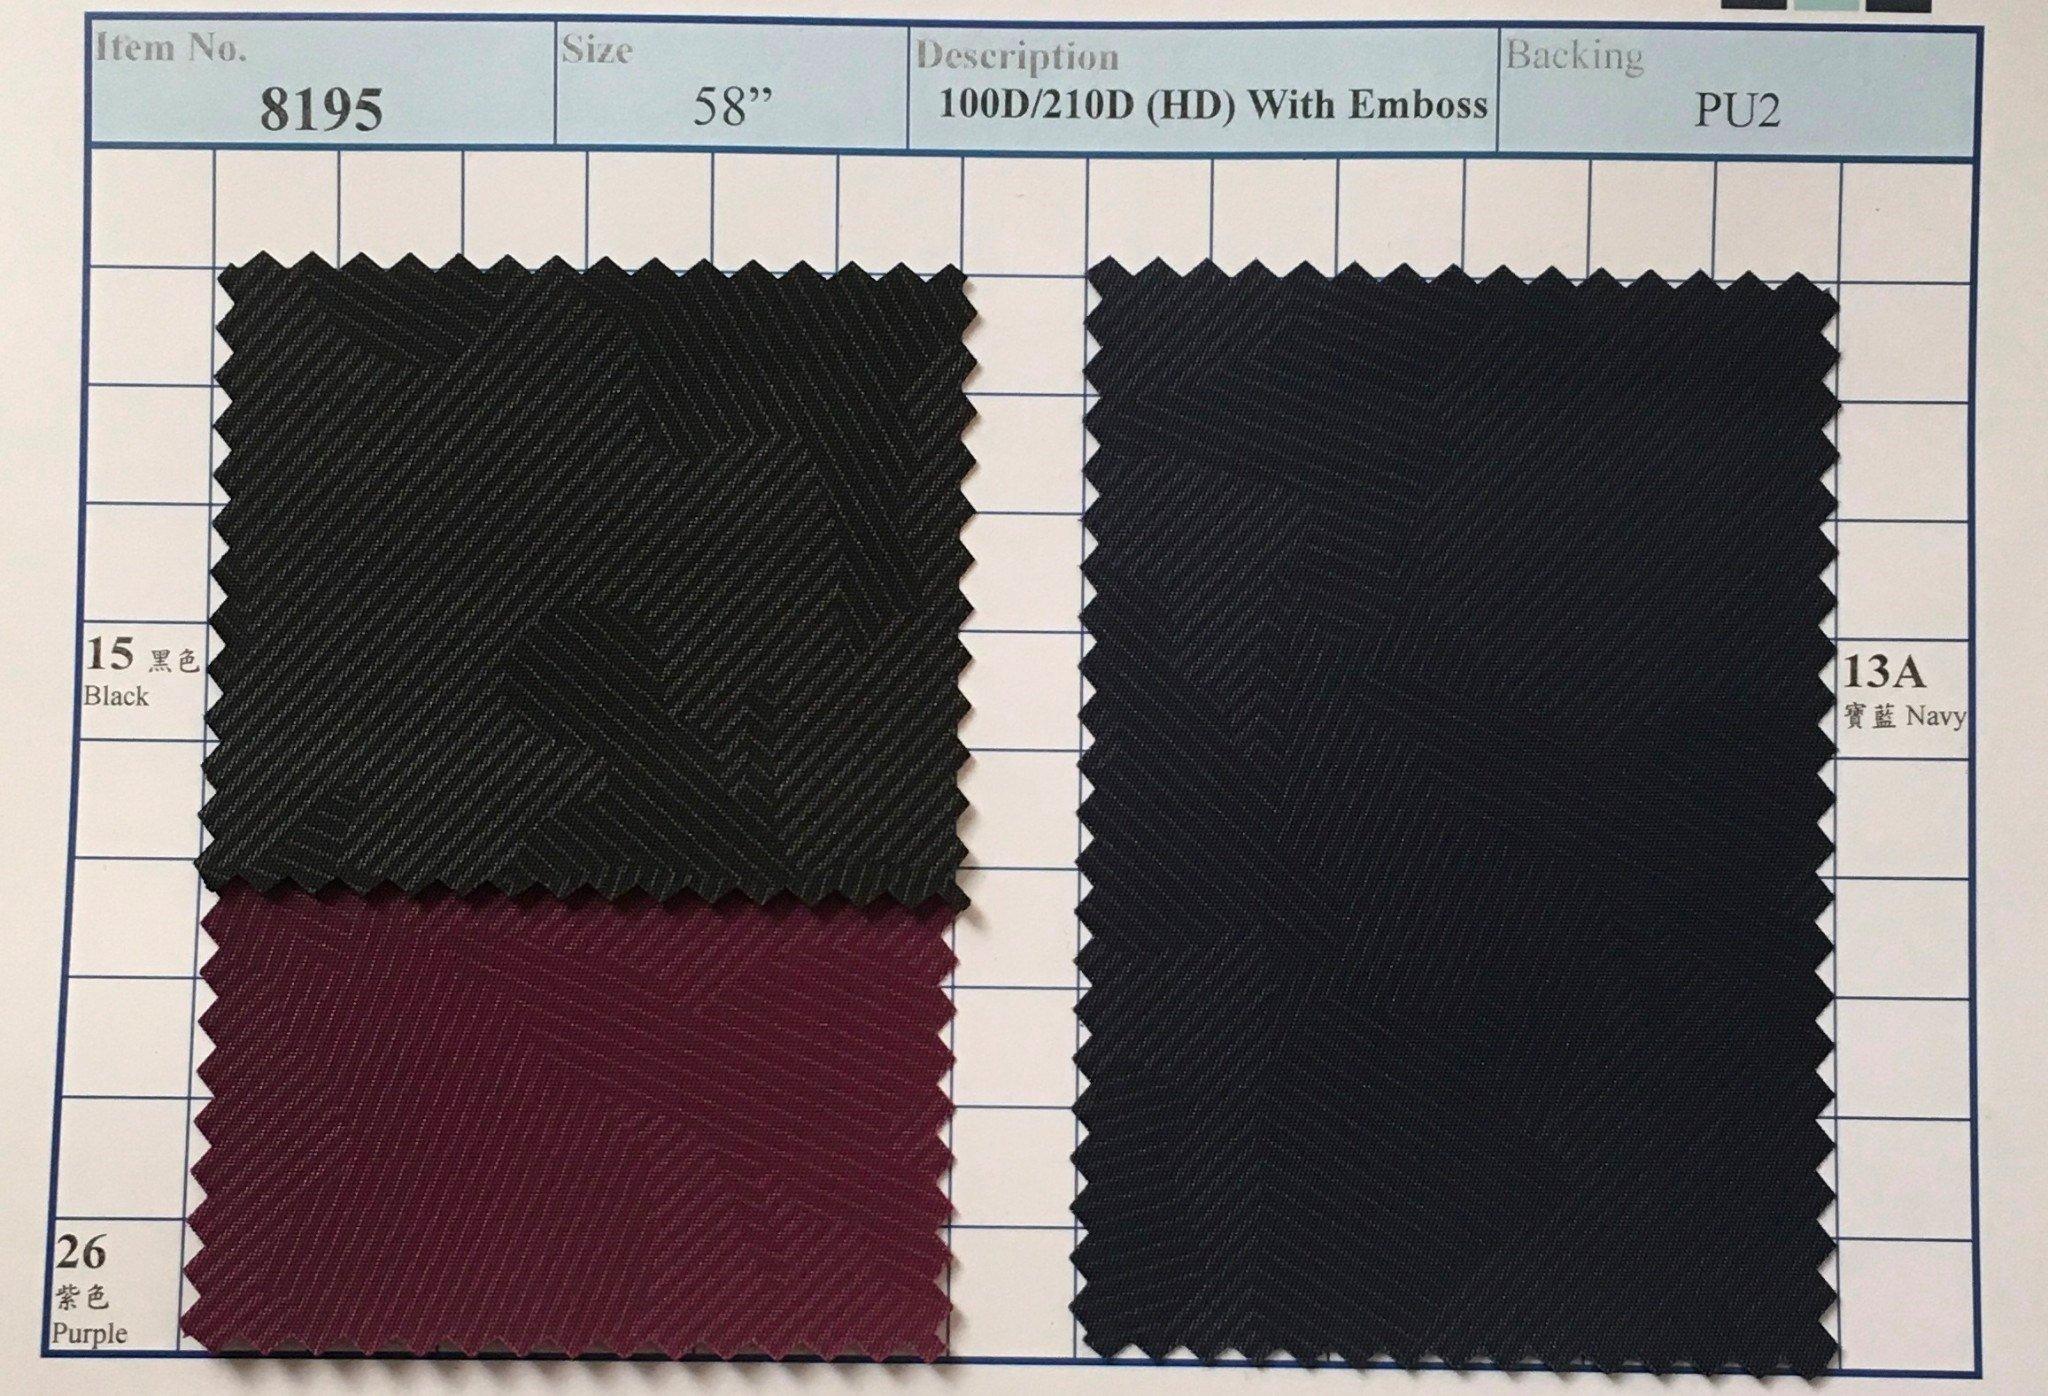 item 8195 100d x 210d hd with emboss backing pu2